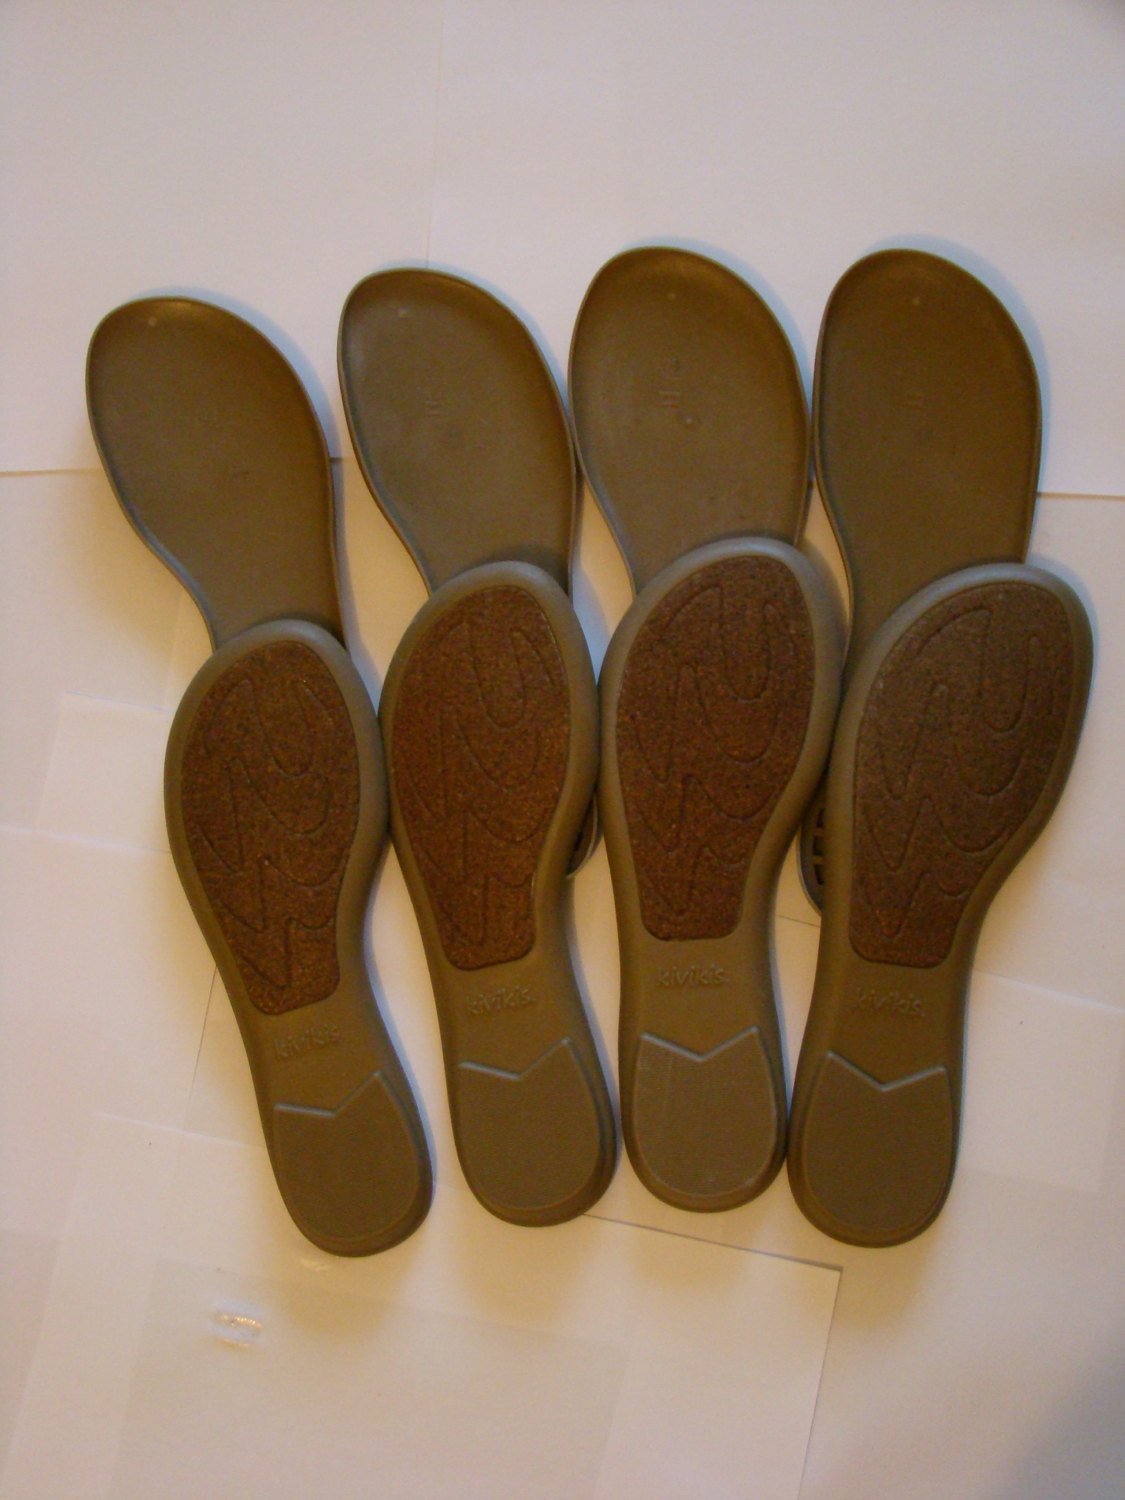 Luxury Slippers Shoes Rubber soles for Hand Made Products From Rubber soles for Crochet Slippers Of Luxury 50 Models Rubber soles for Crochet Slippers